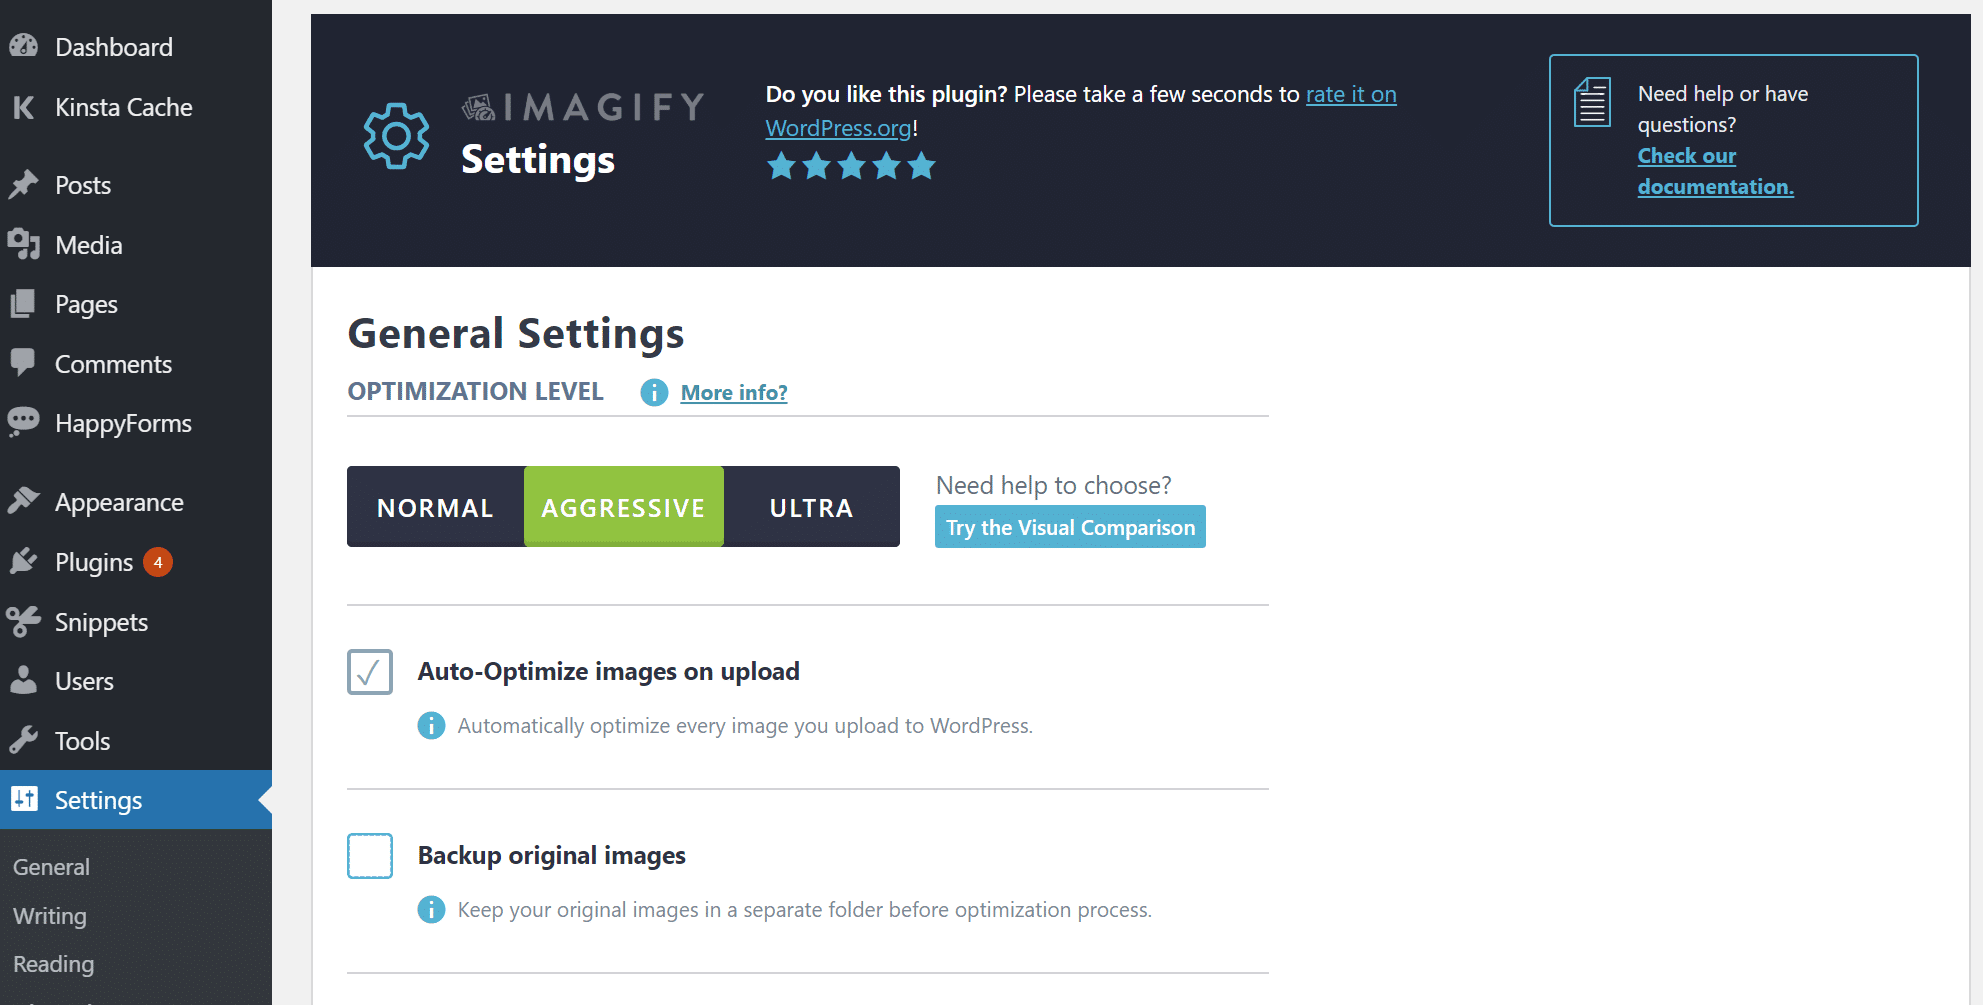 Imagify settings